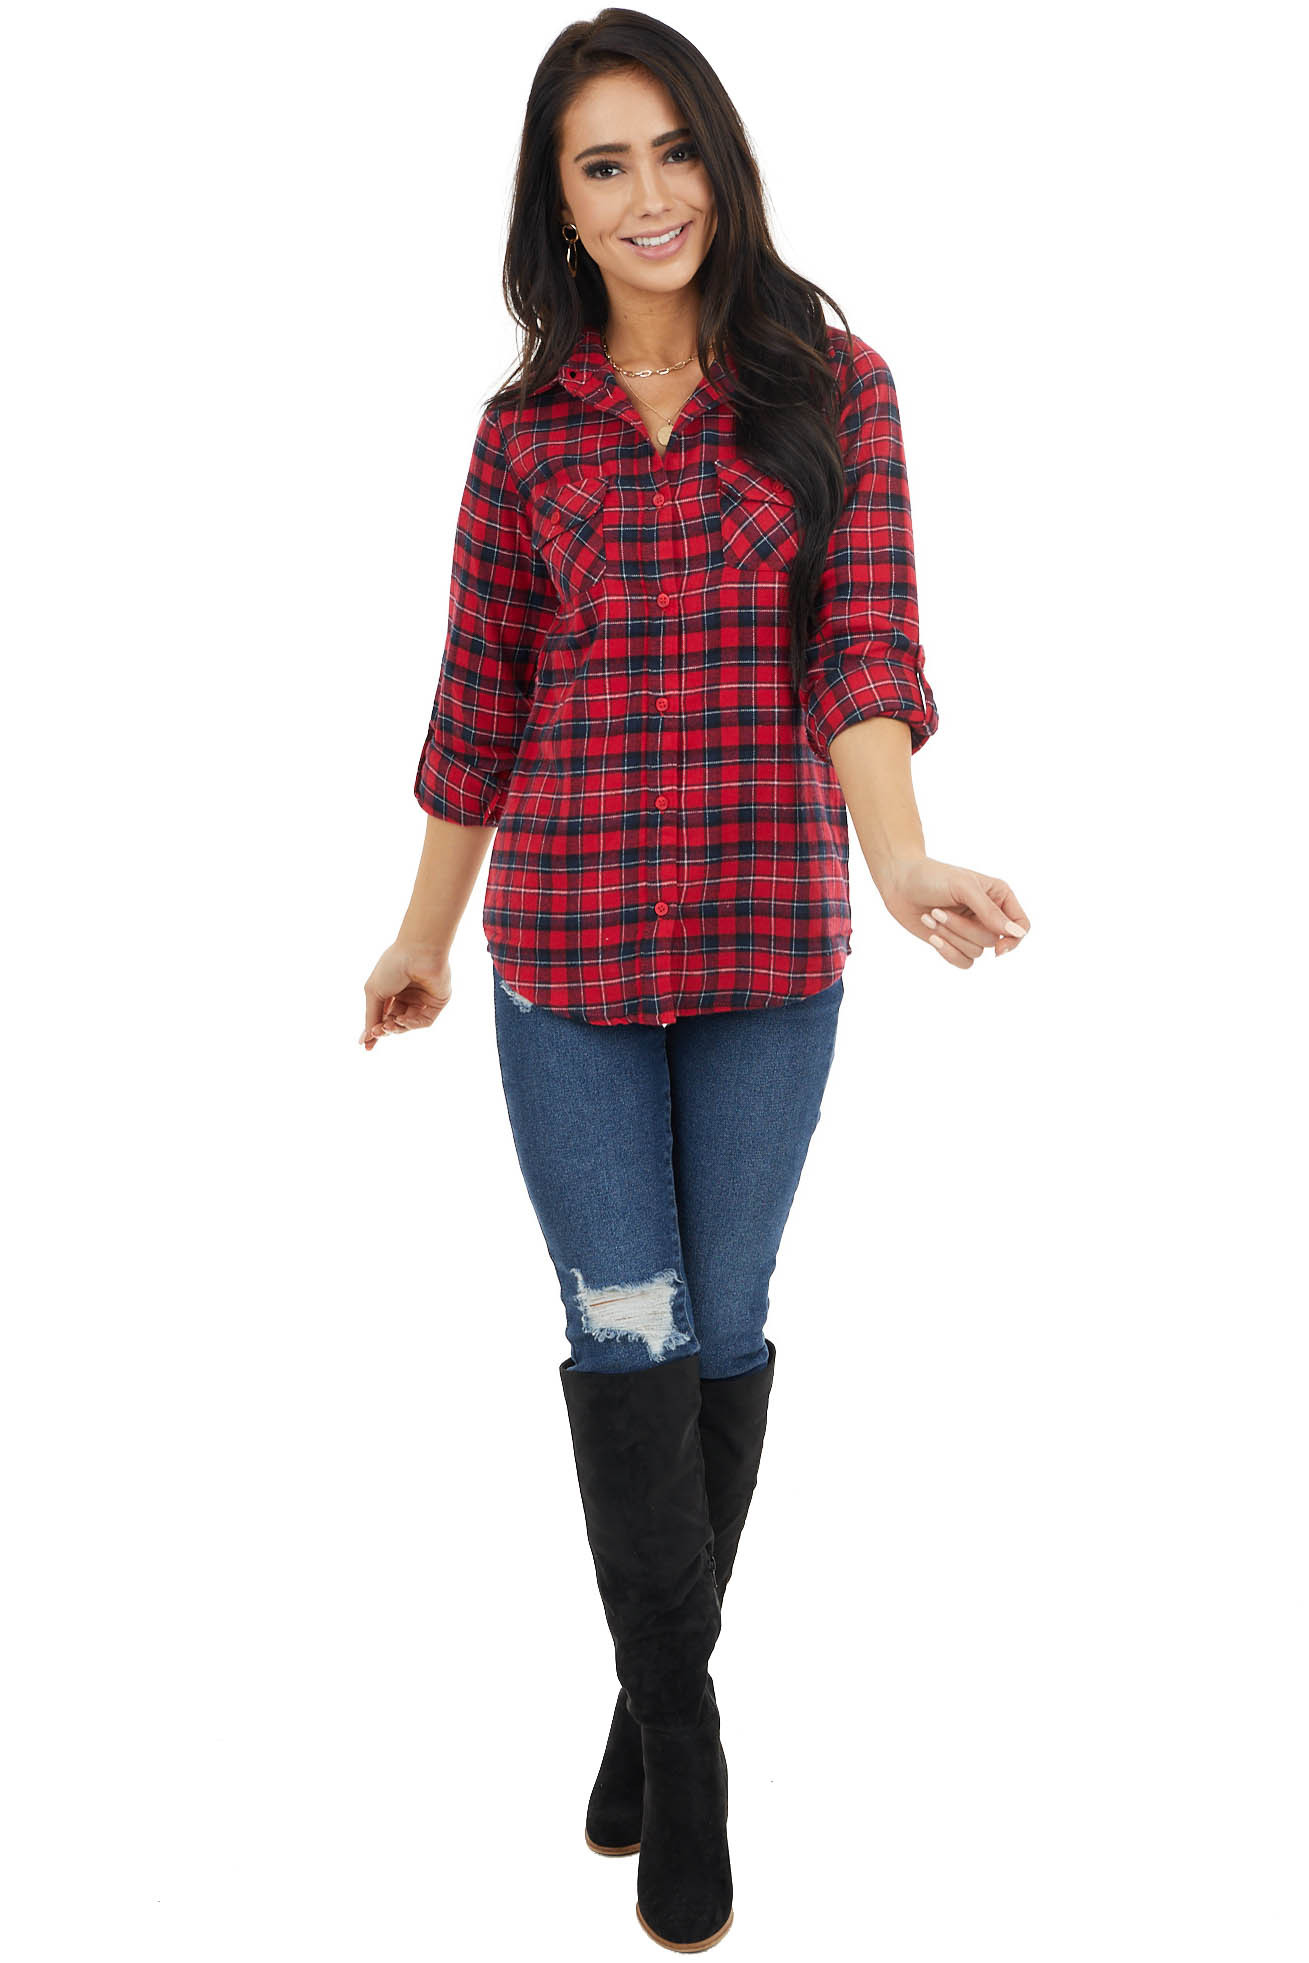 Crimson and Black Plaid Button Up Top with Front Pockets